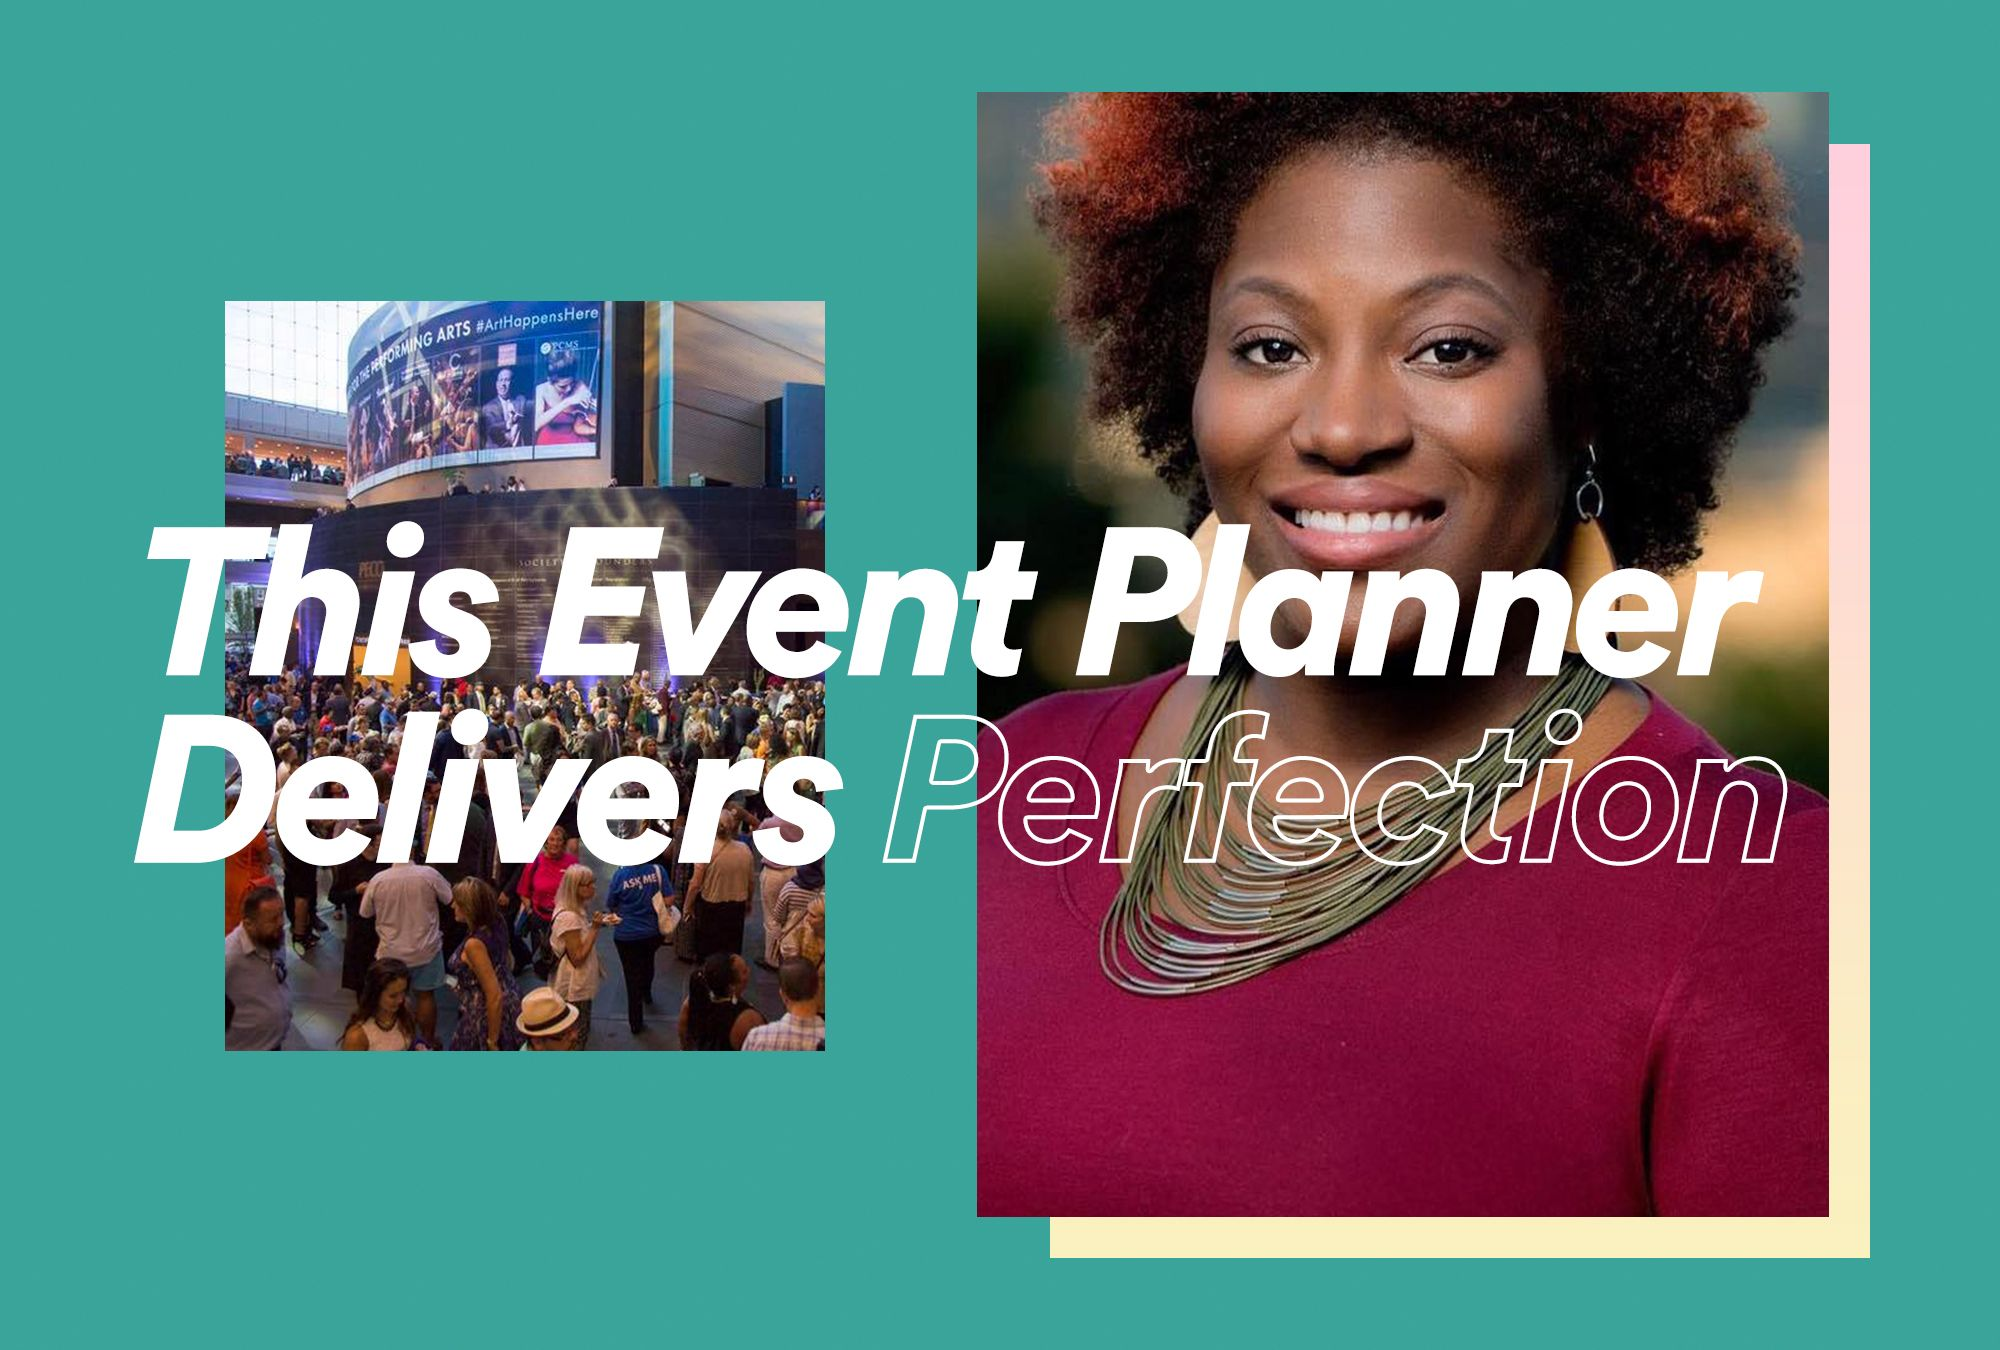 This Event Planner Delivers Perfection